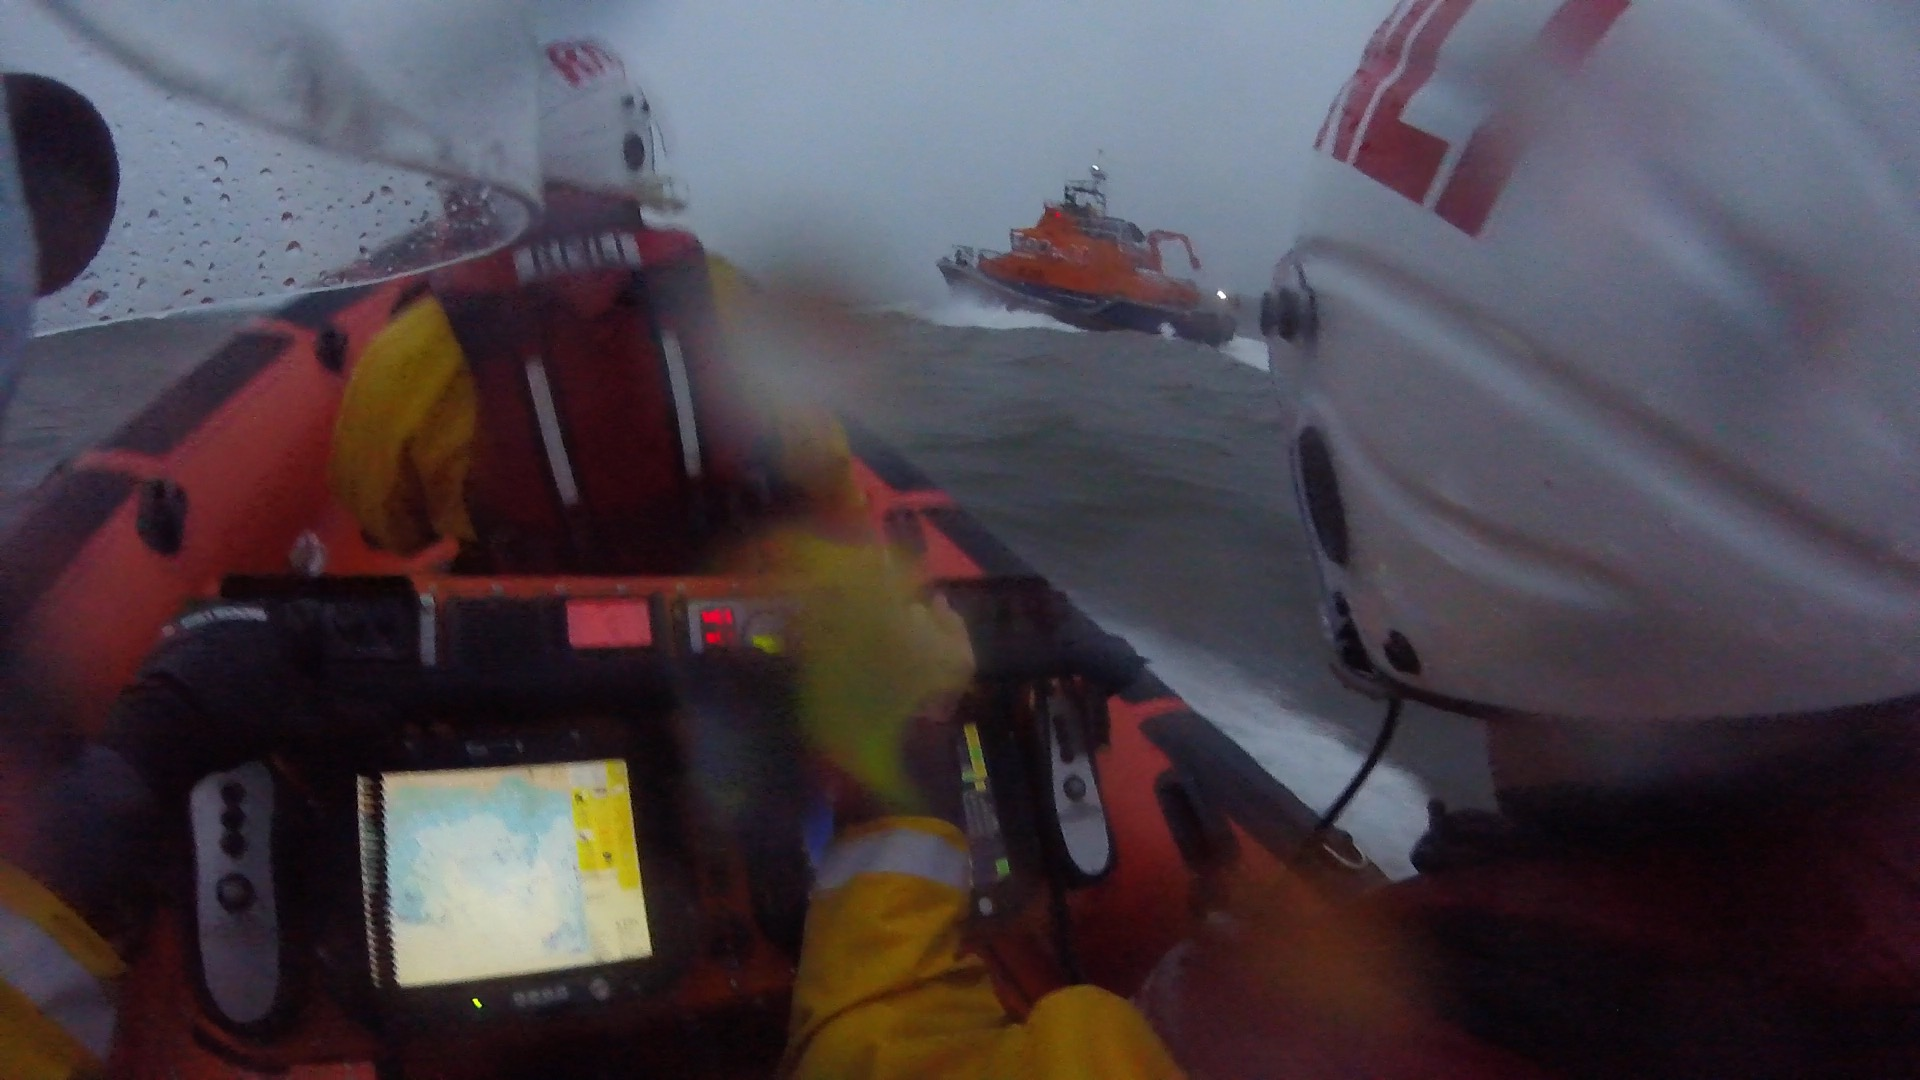 Helmet cam photo from ILB looking at ALB